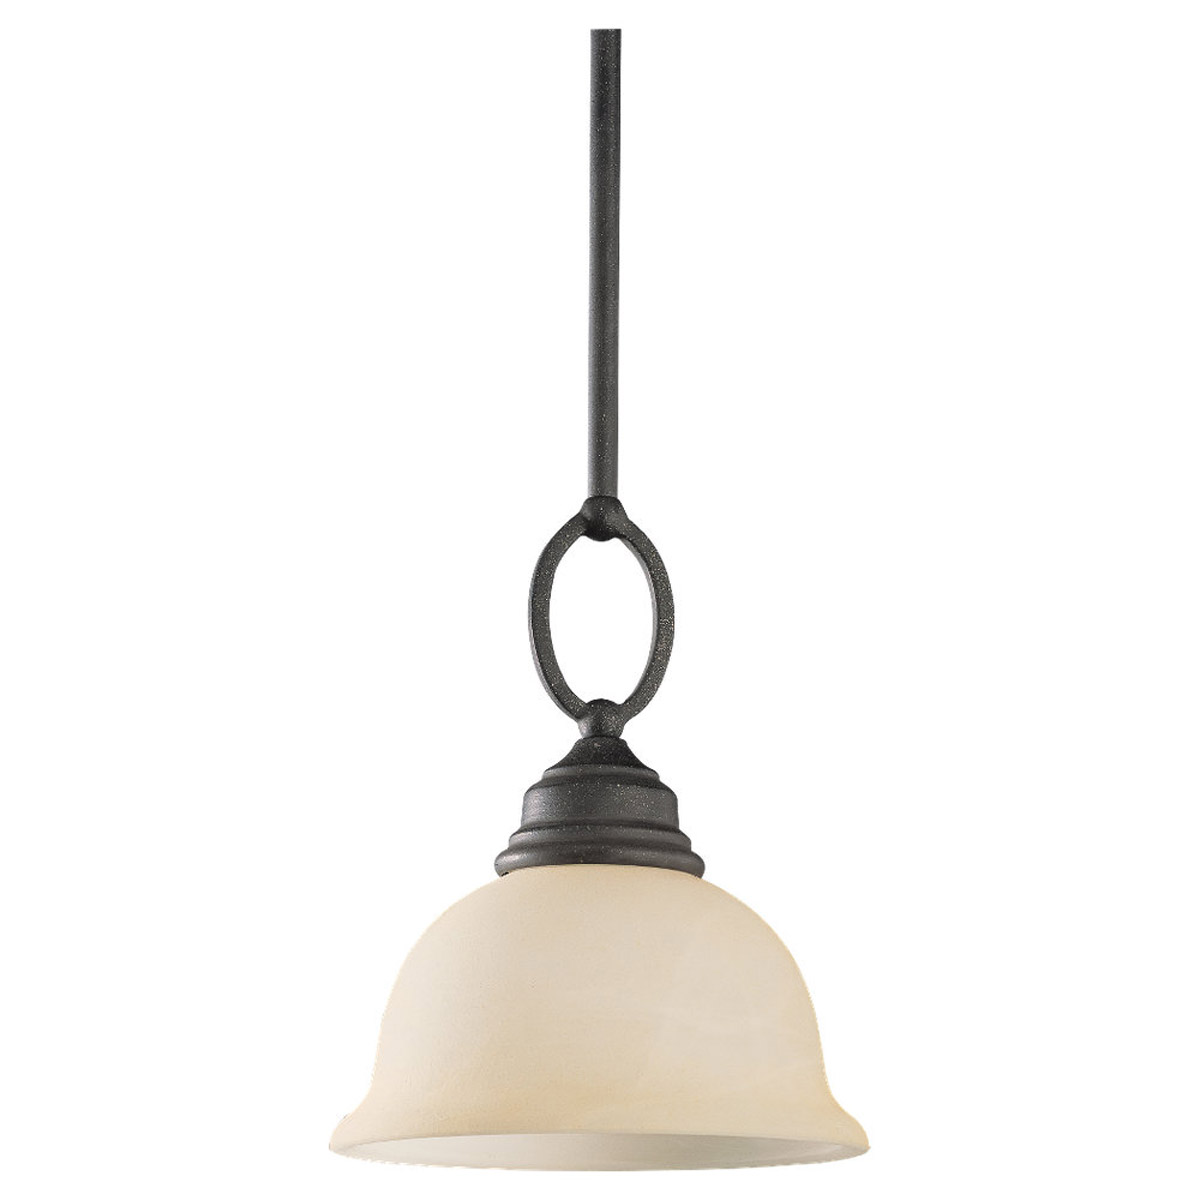 Sea Gull Lighting Serenity 1 Light Mini Pendant in Weathered Iron 61190-07